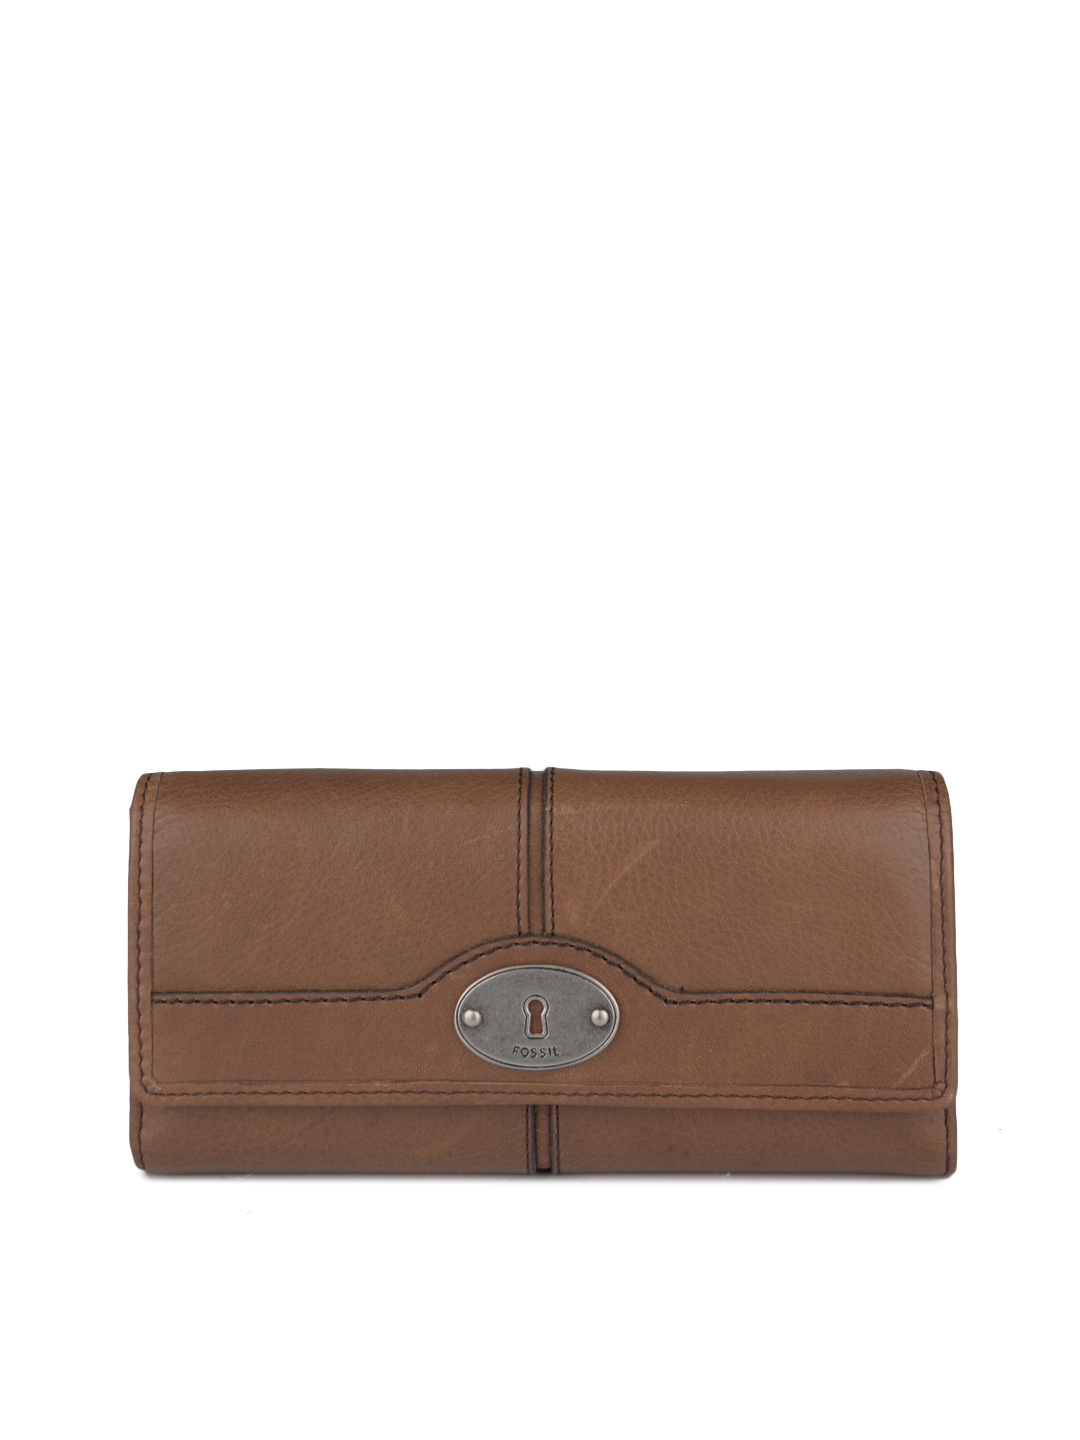 Fossil Women Brown Wallet